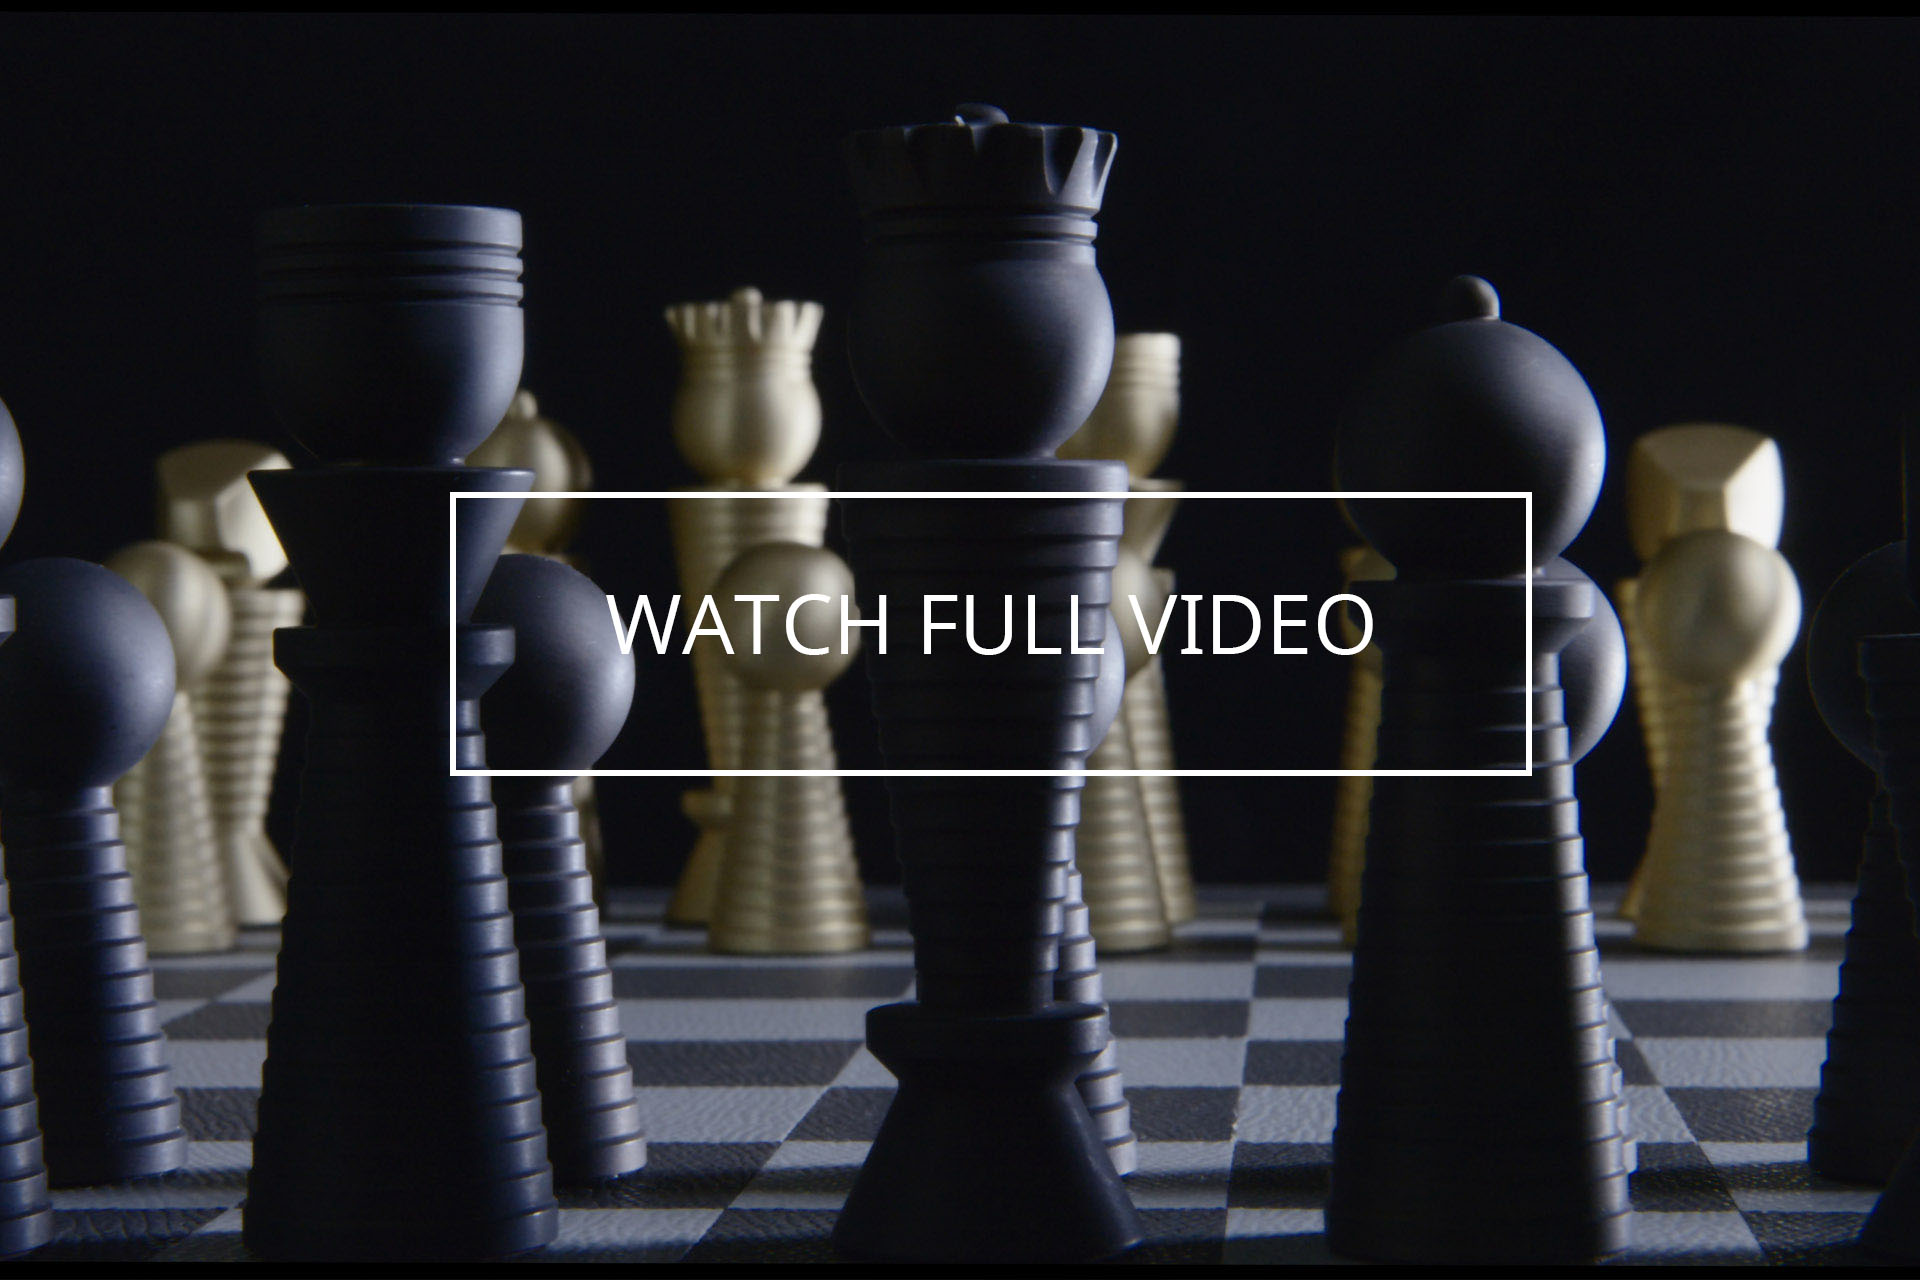 Chess Set WATCH FULL VIDEO